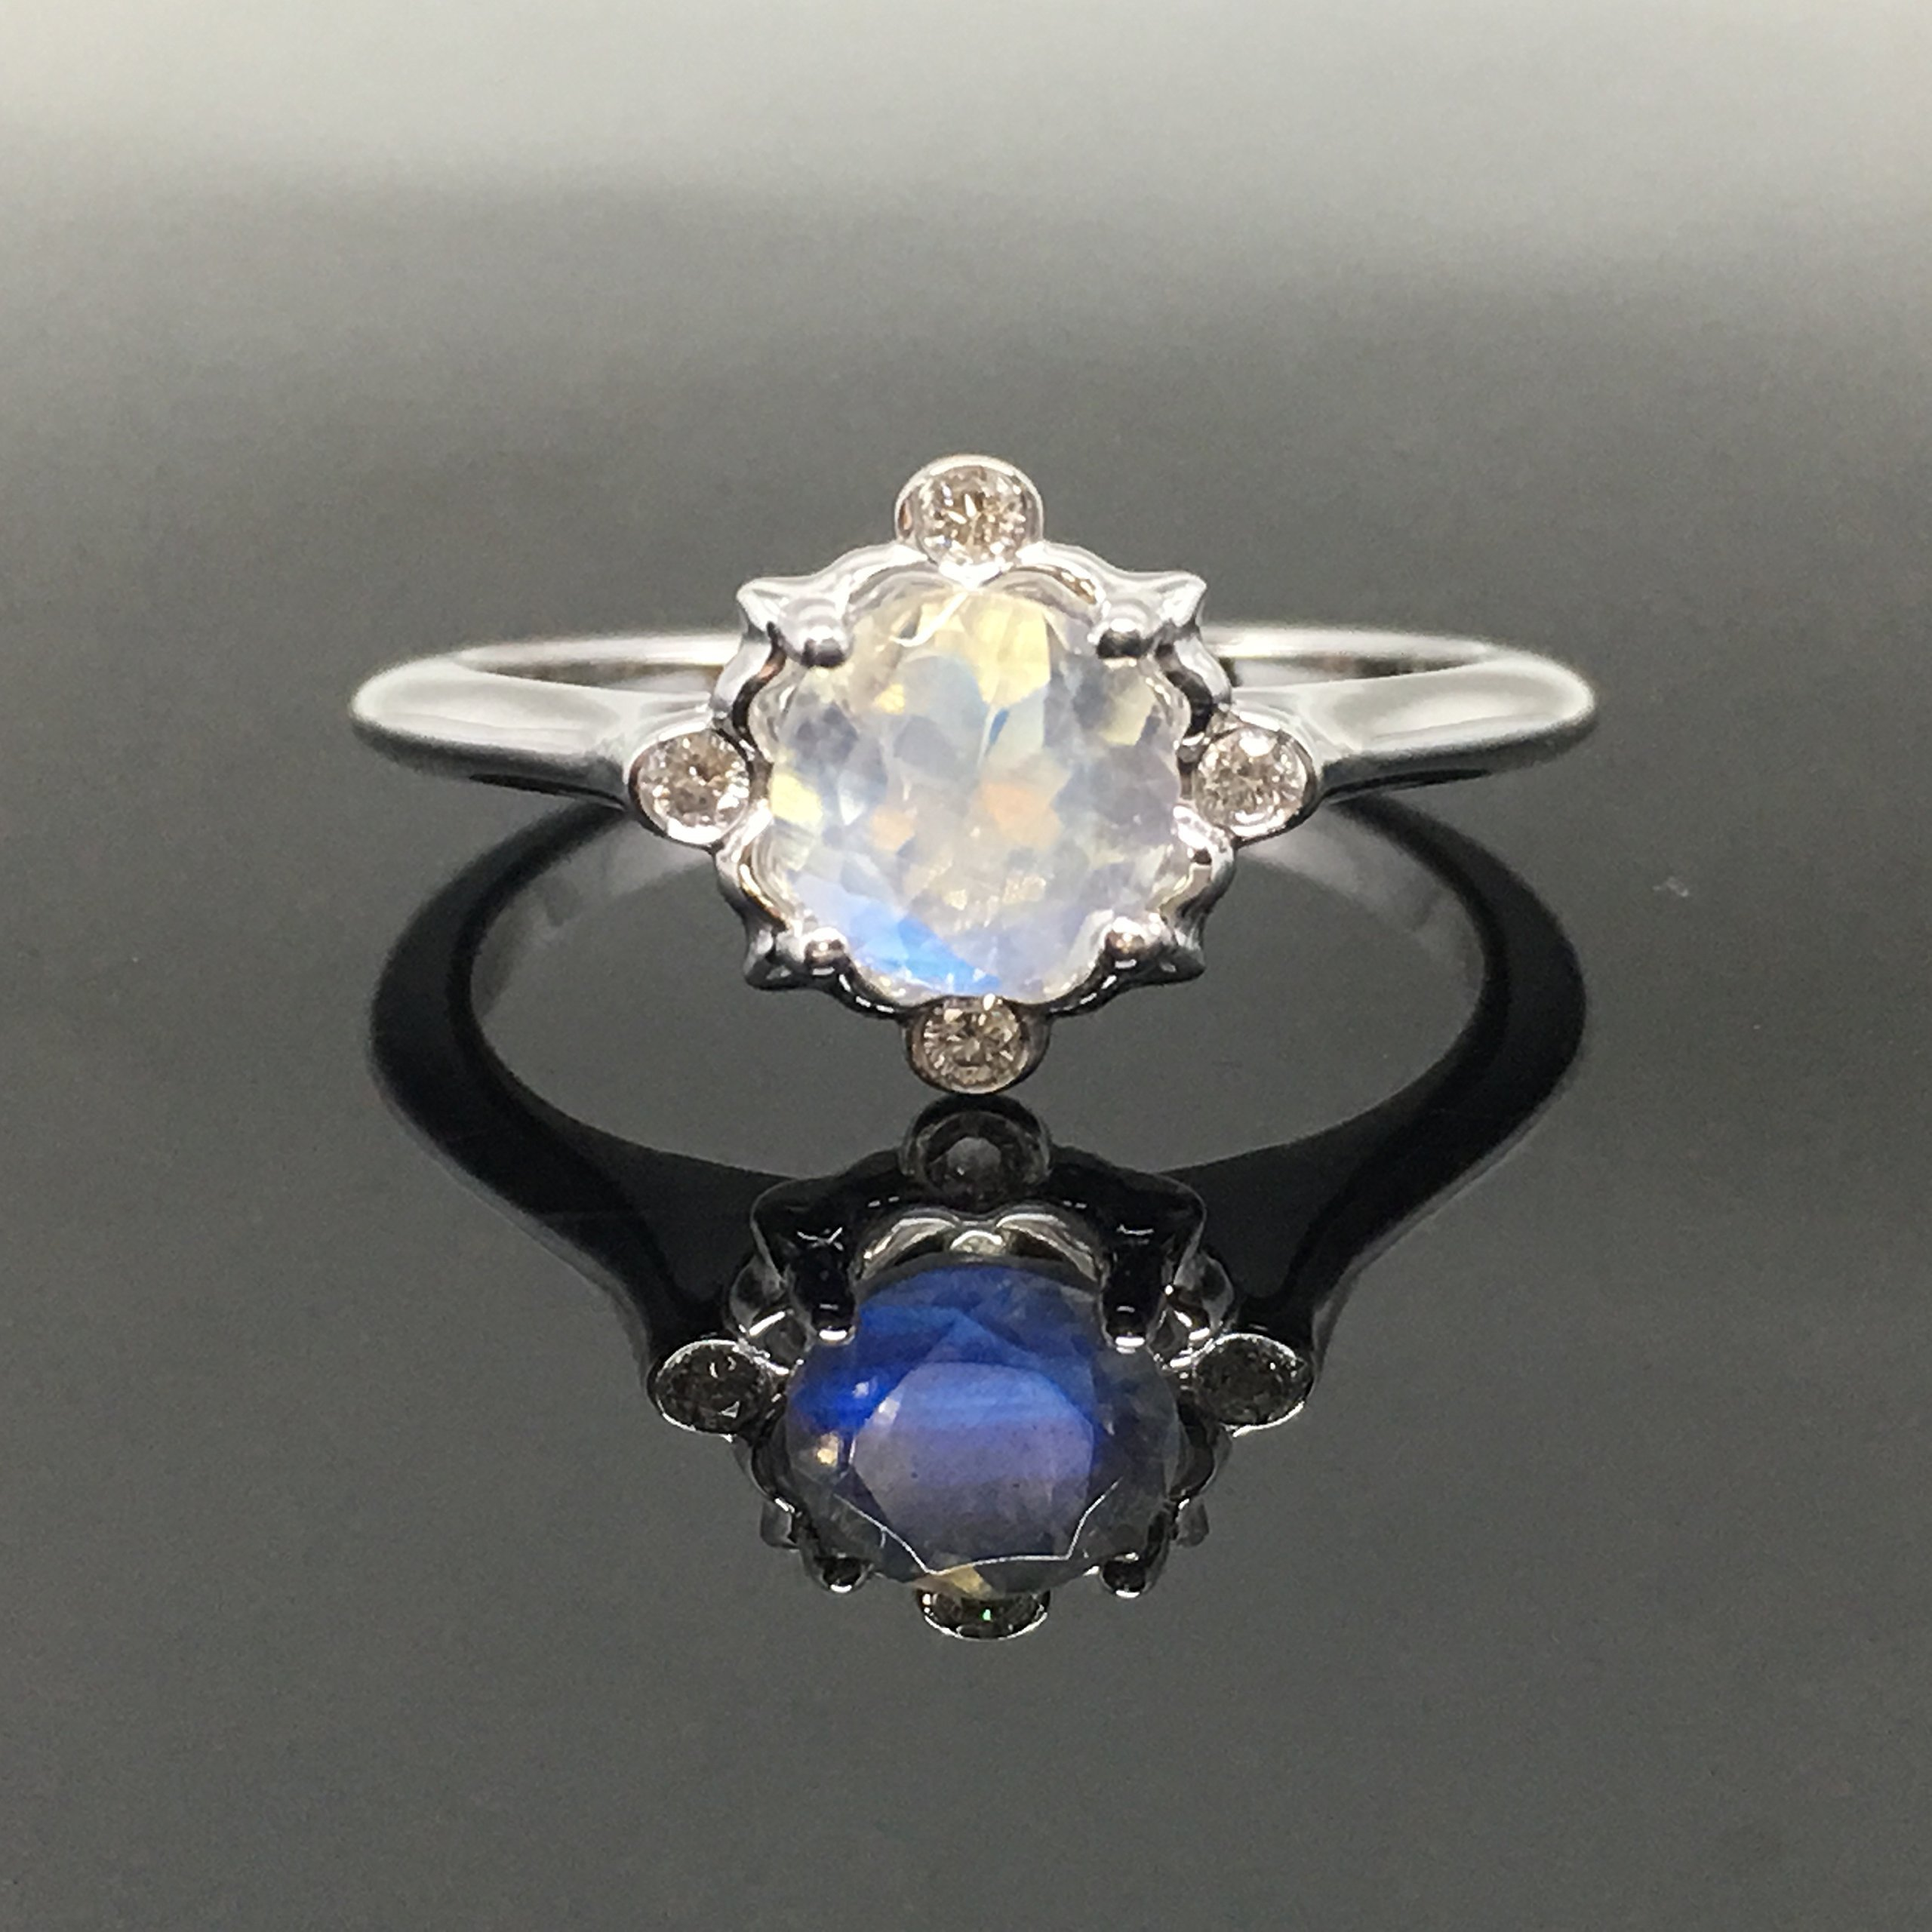 Moonstone Engagement Ring - .925 Sterling Silver Victorian Moonstone Engagement Ring - Vintage Inspired Moonstone Ring - Rainbow Moonstone Ring